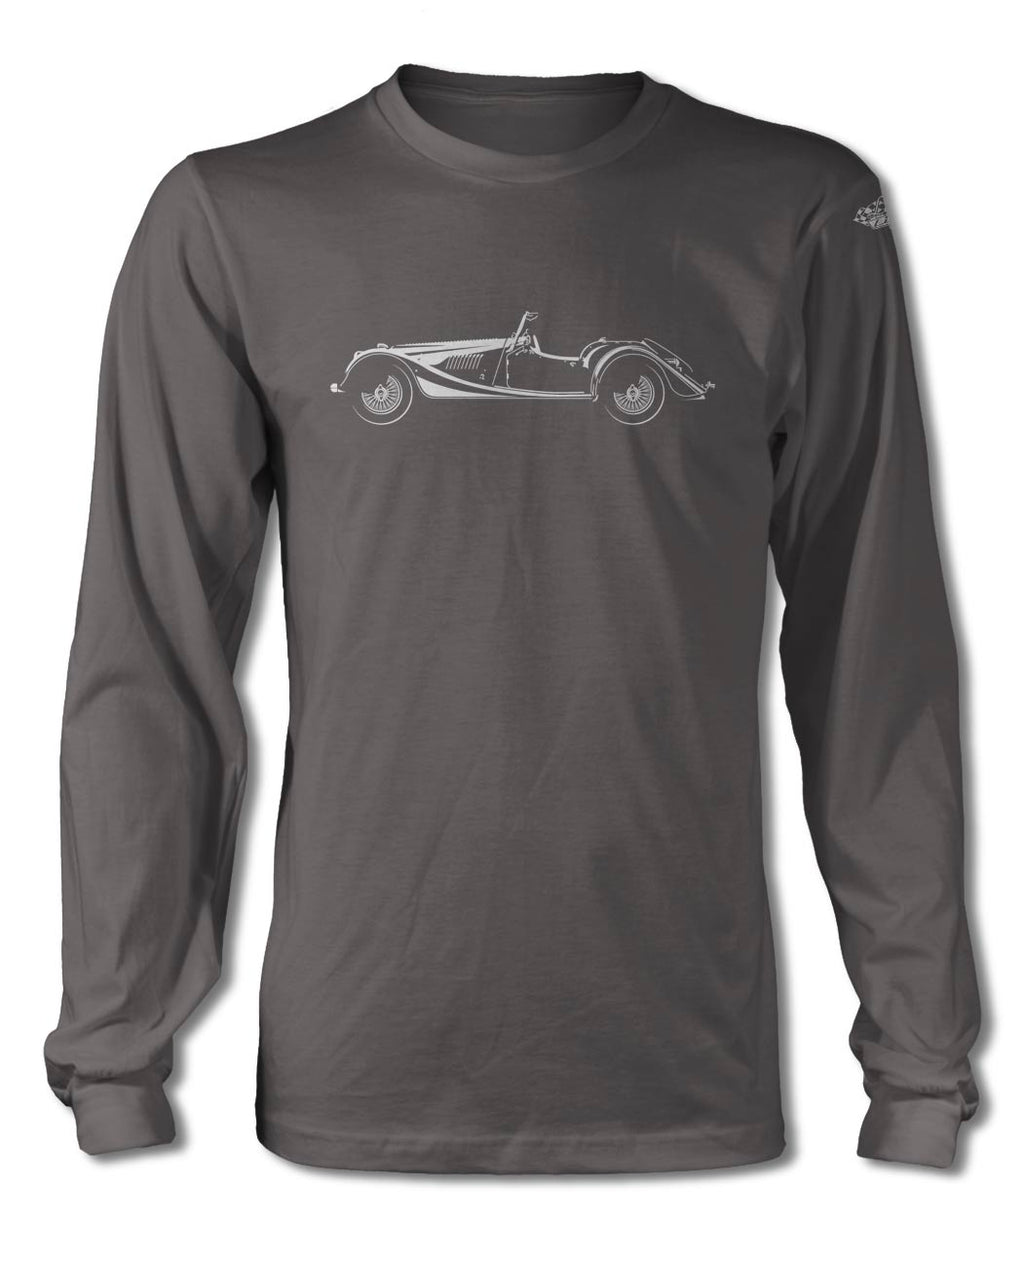 Morgan 4/4 Convertible T-Shirt - Long Sleeves - Side View